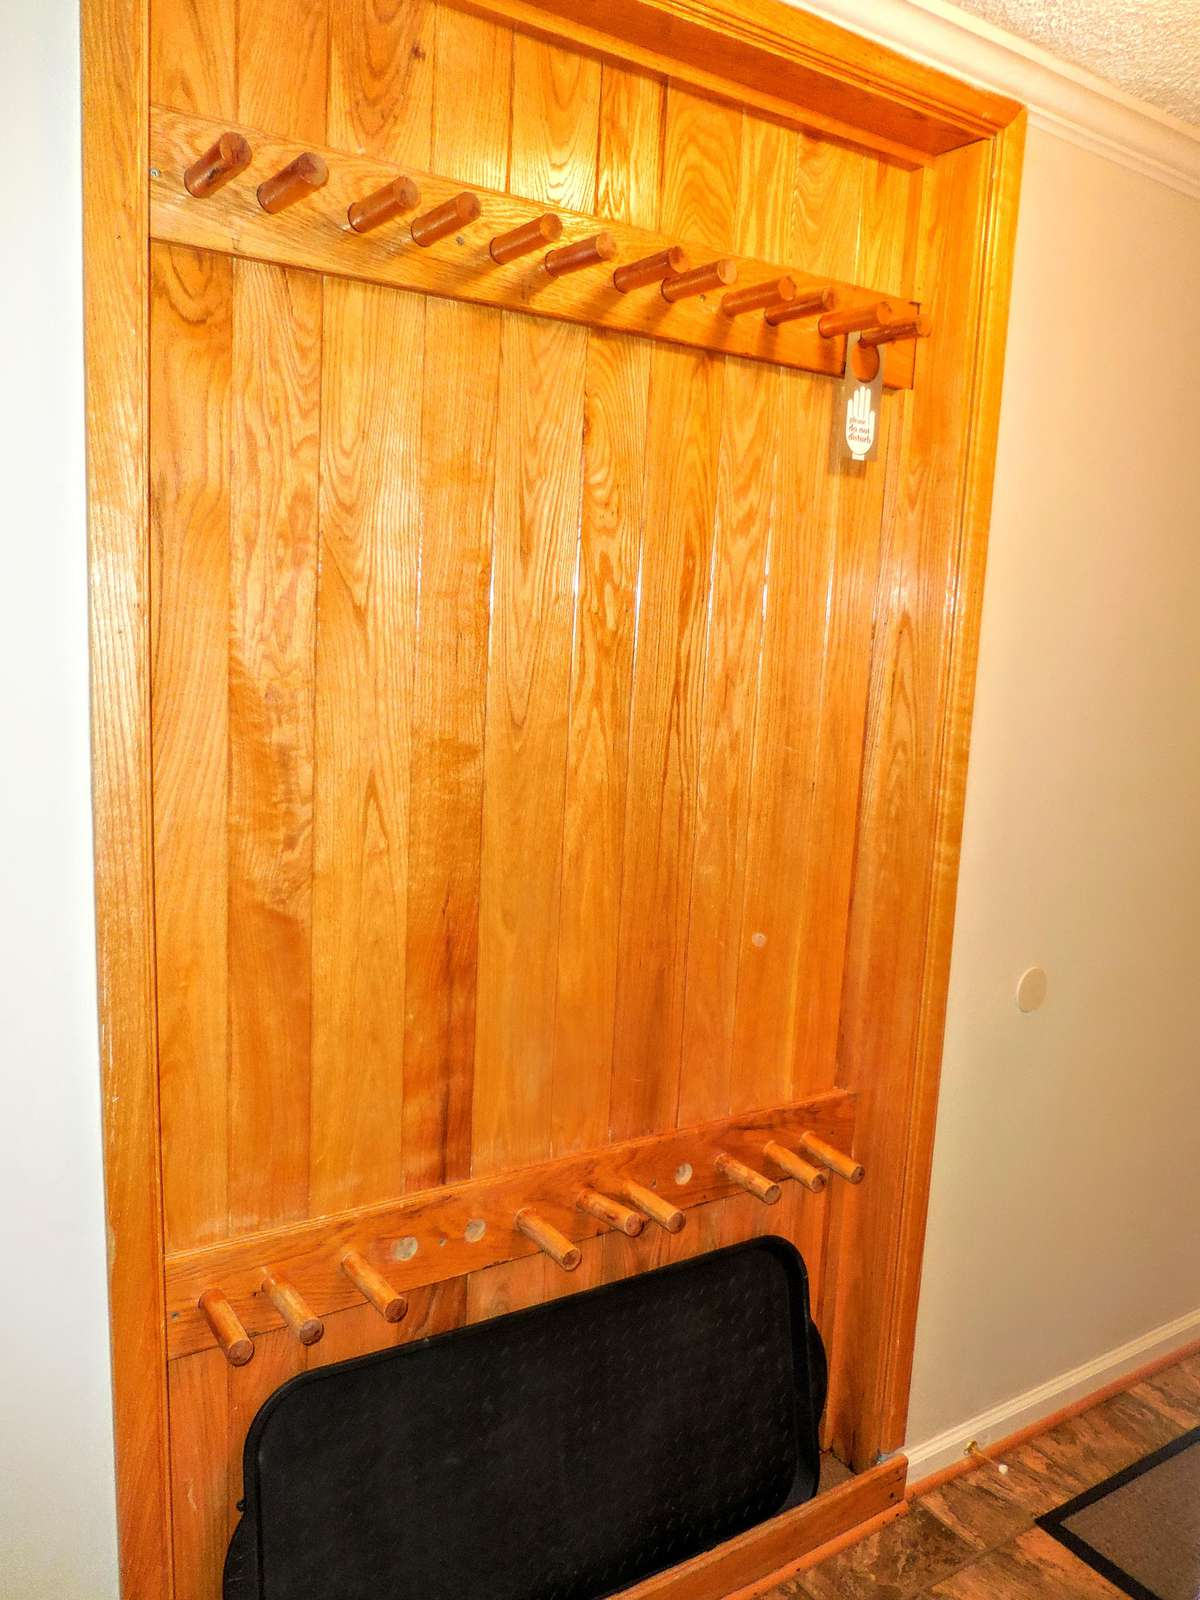 Recessed ski rack in hallway is a perfect location to safely store your gear indoors.